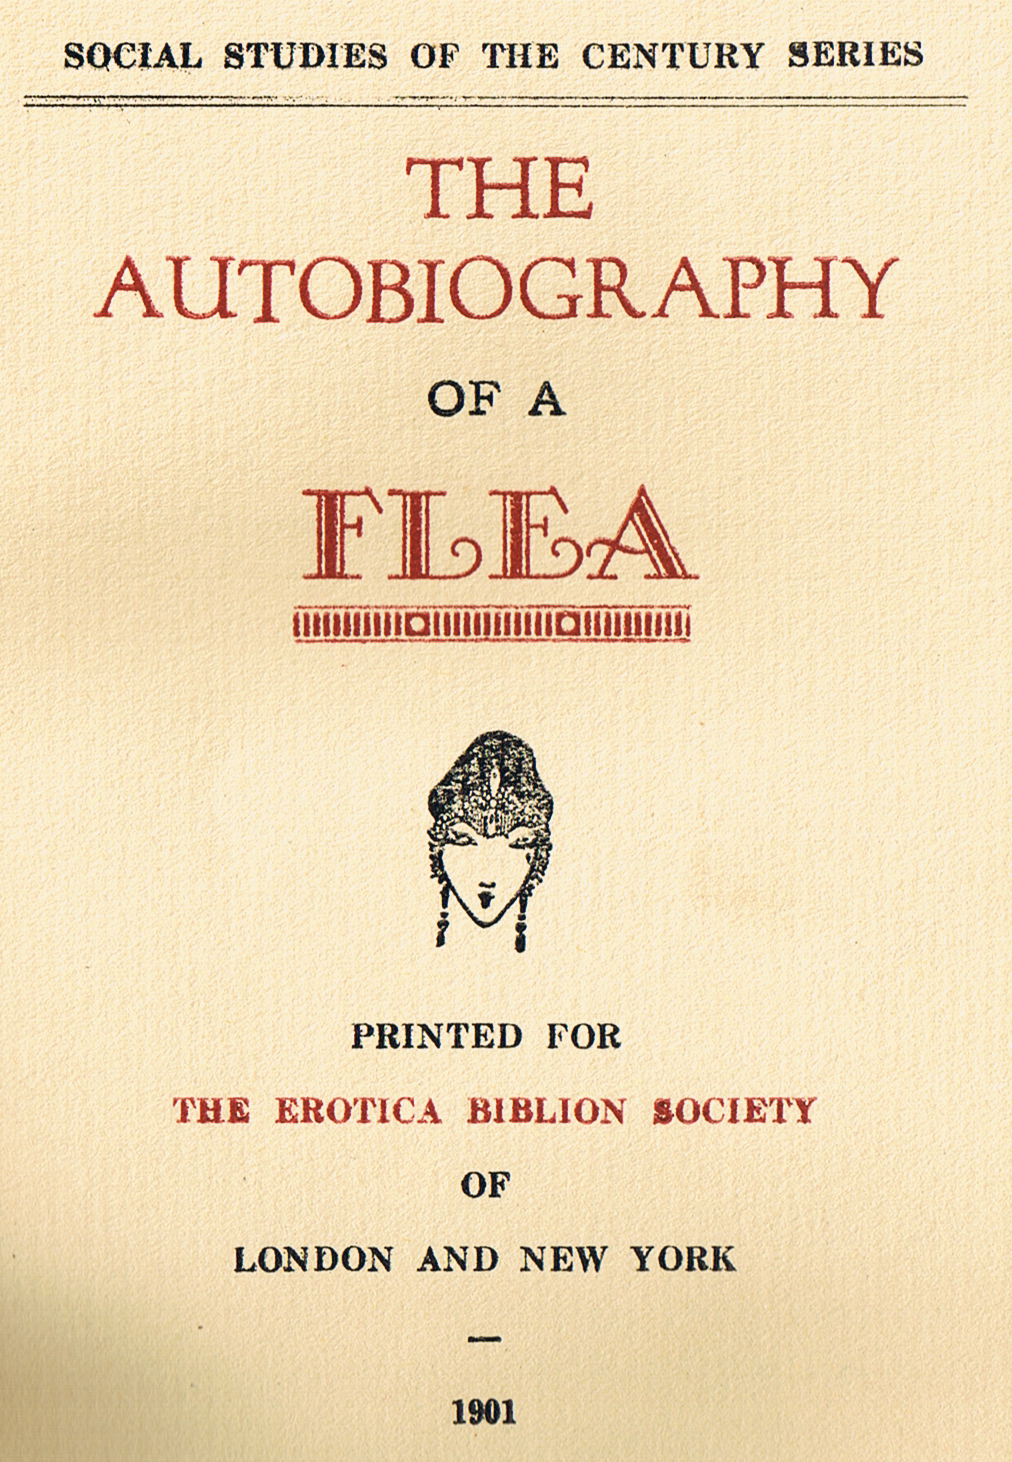 https://upload.wikimedia.org/wikipedia/commons/c/c6/Autobiography_of_a_flea_title_page.png